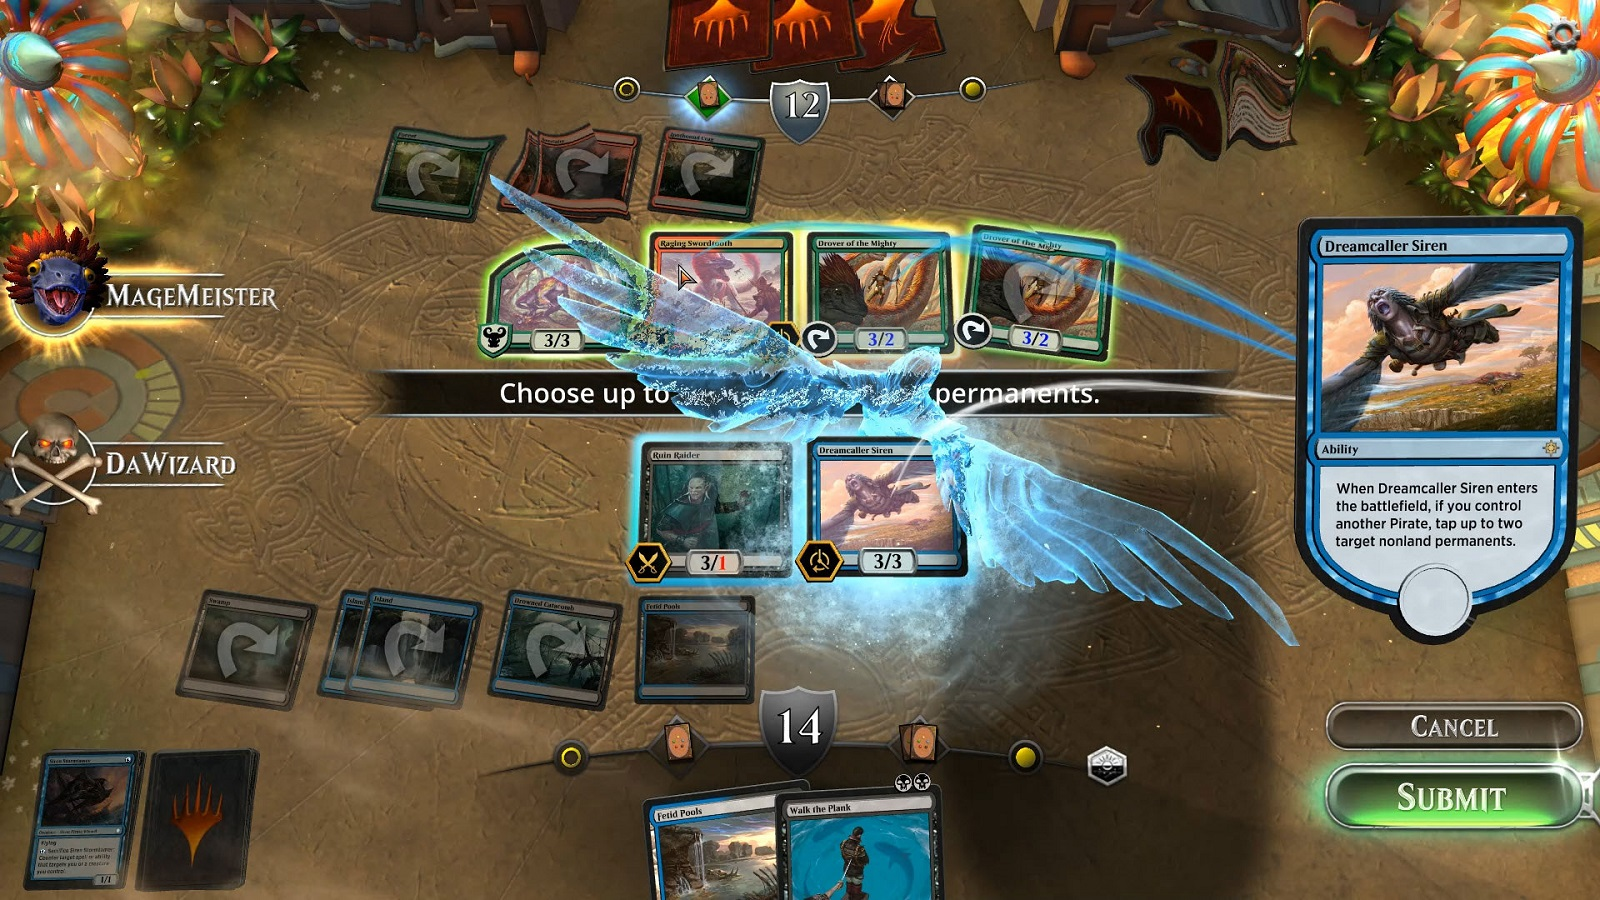 Arena Game Magic The Gathering Arena Is Wizards Of The Coast S Answer To